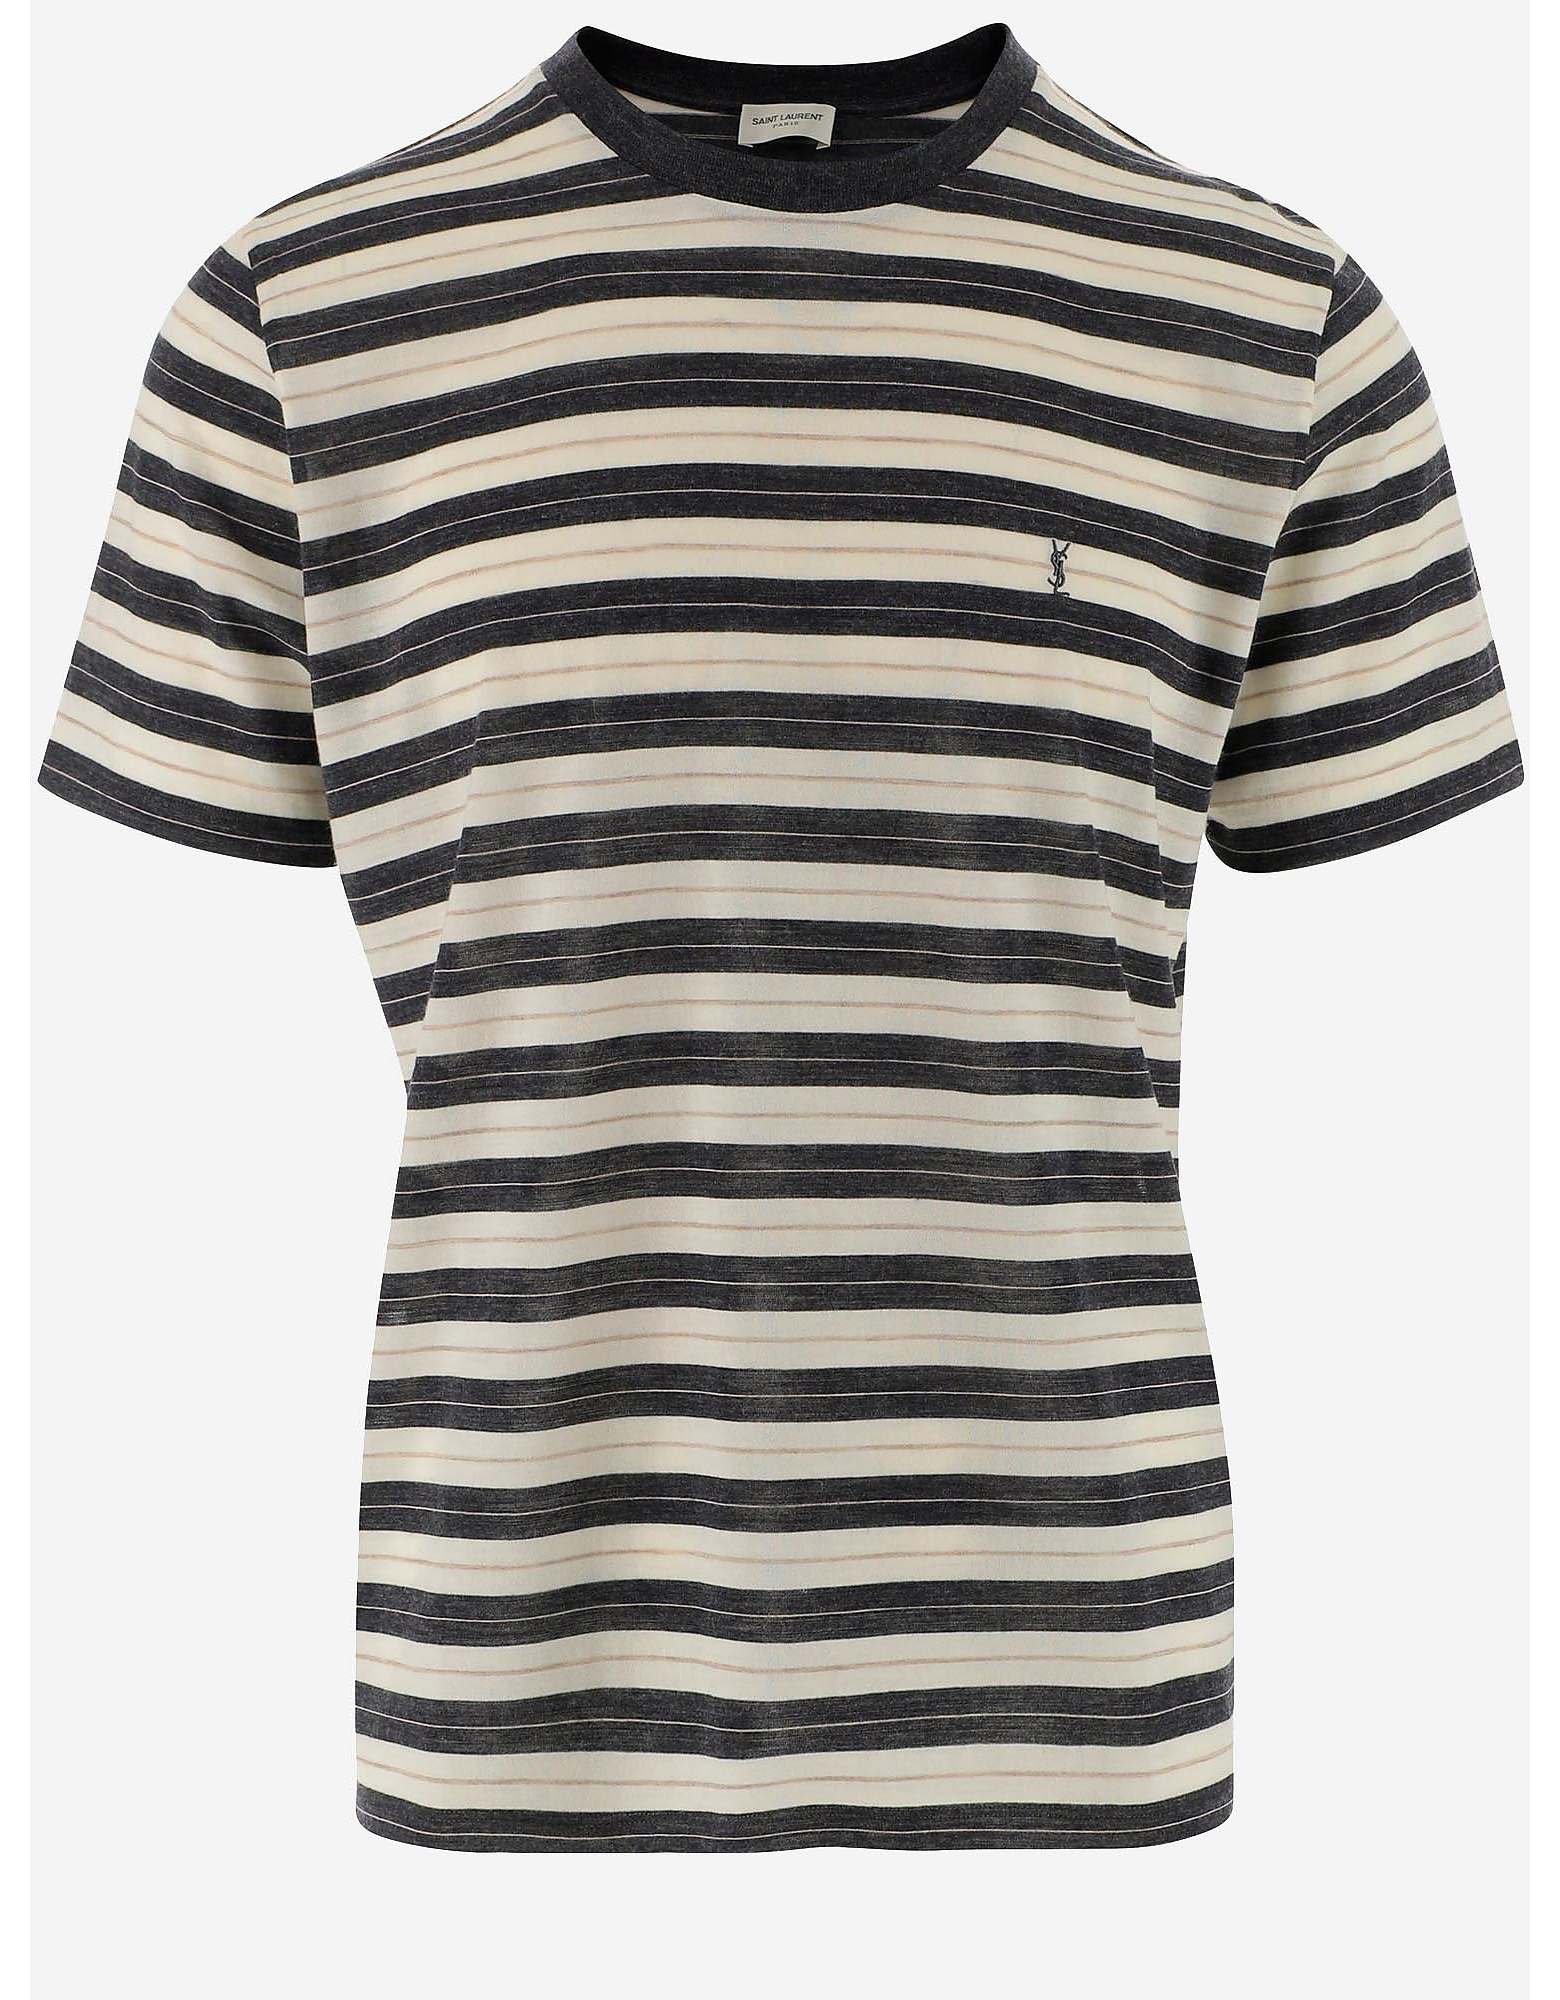 Saint Laurent Designer T-Shirts, Striped Wool Men's T-Shirt